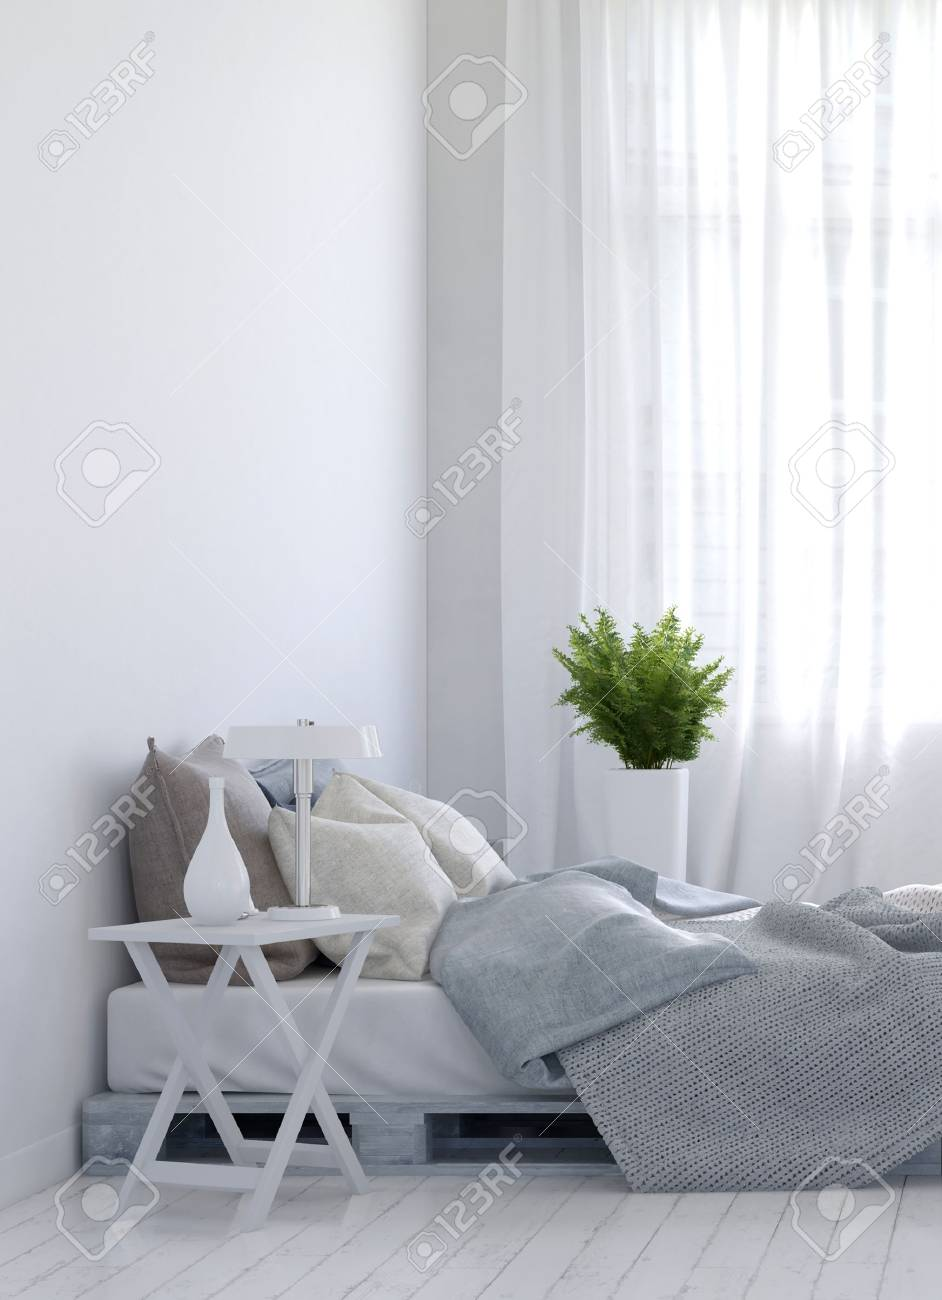 Night stand and fern plant on either side of empty unmade bed over hardwood white floor for home scene. 3d Rendering. - 60638156